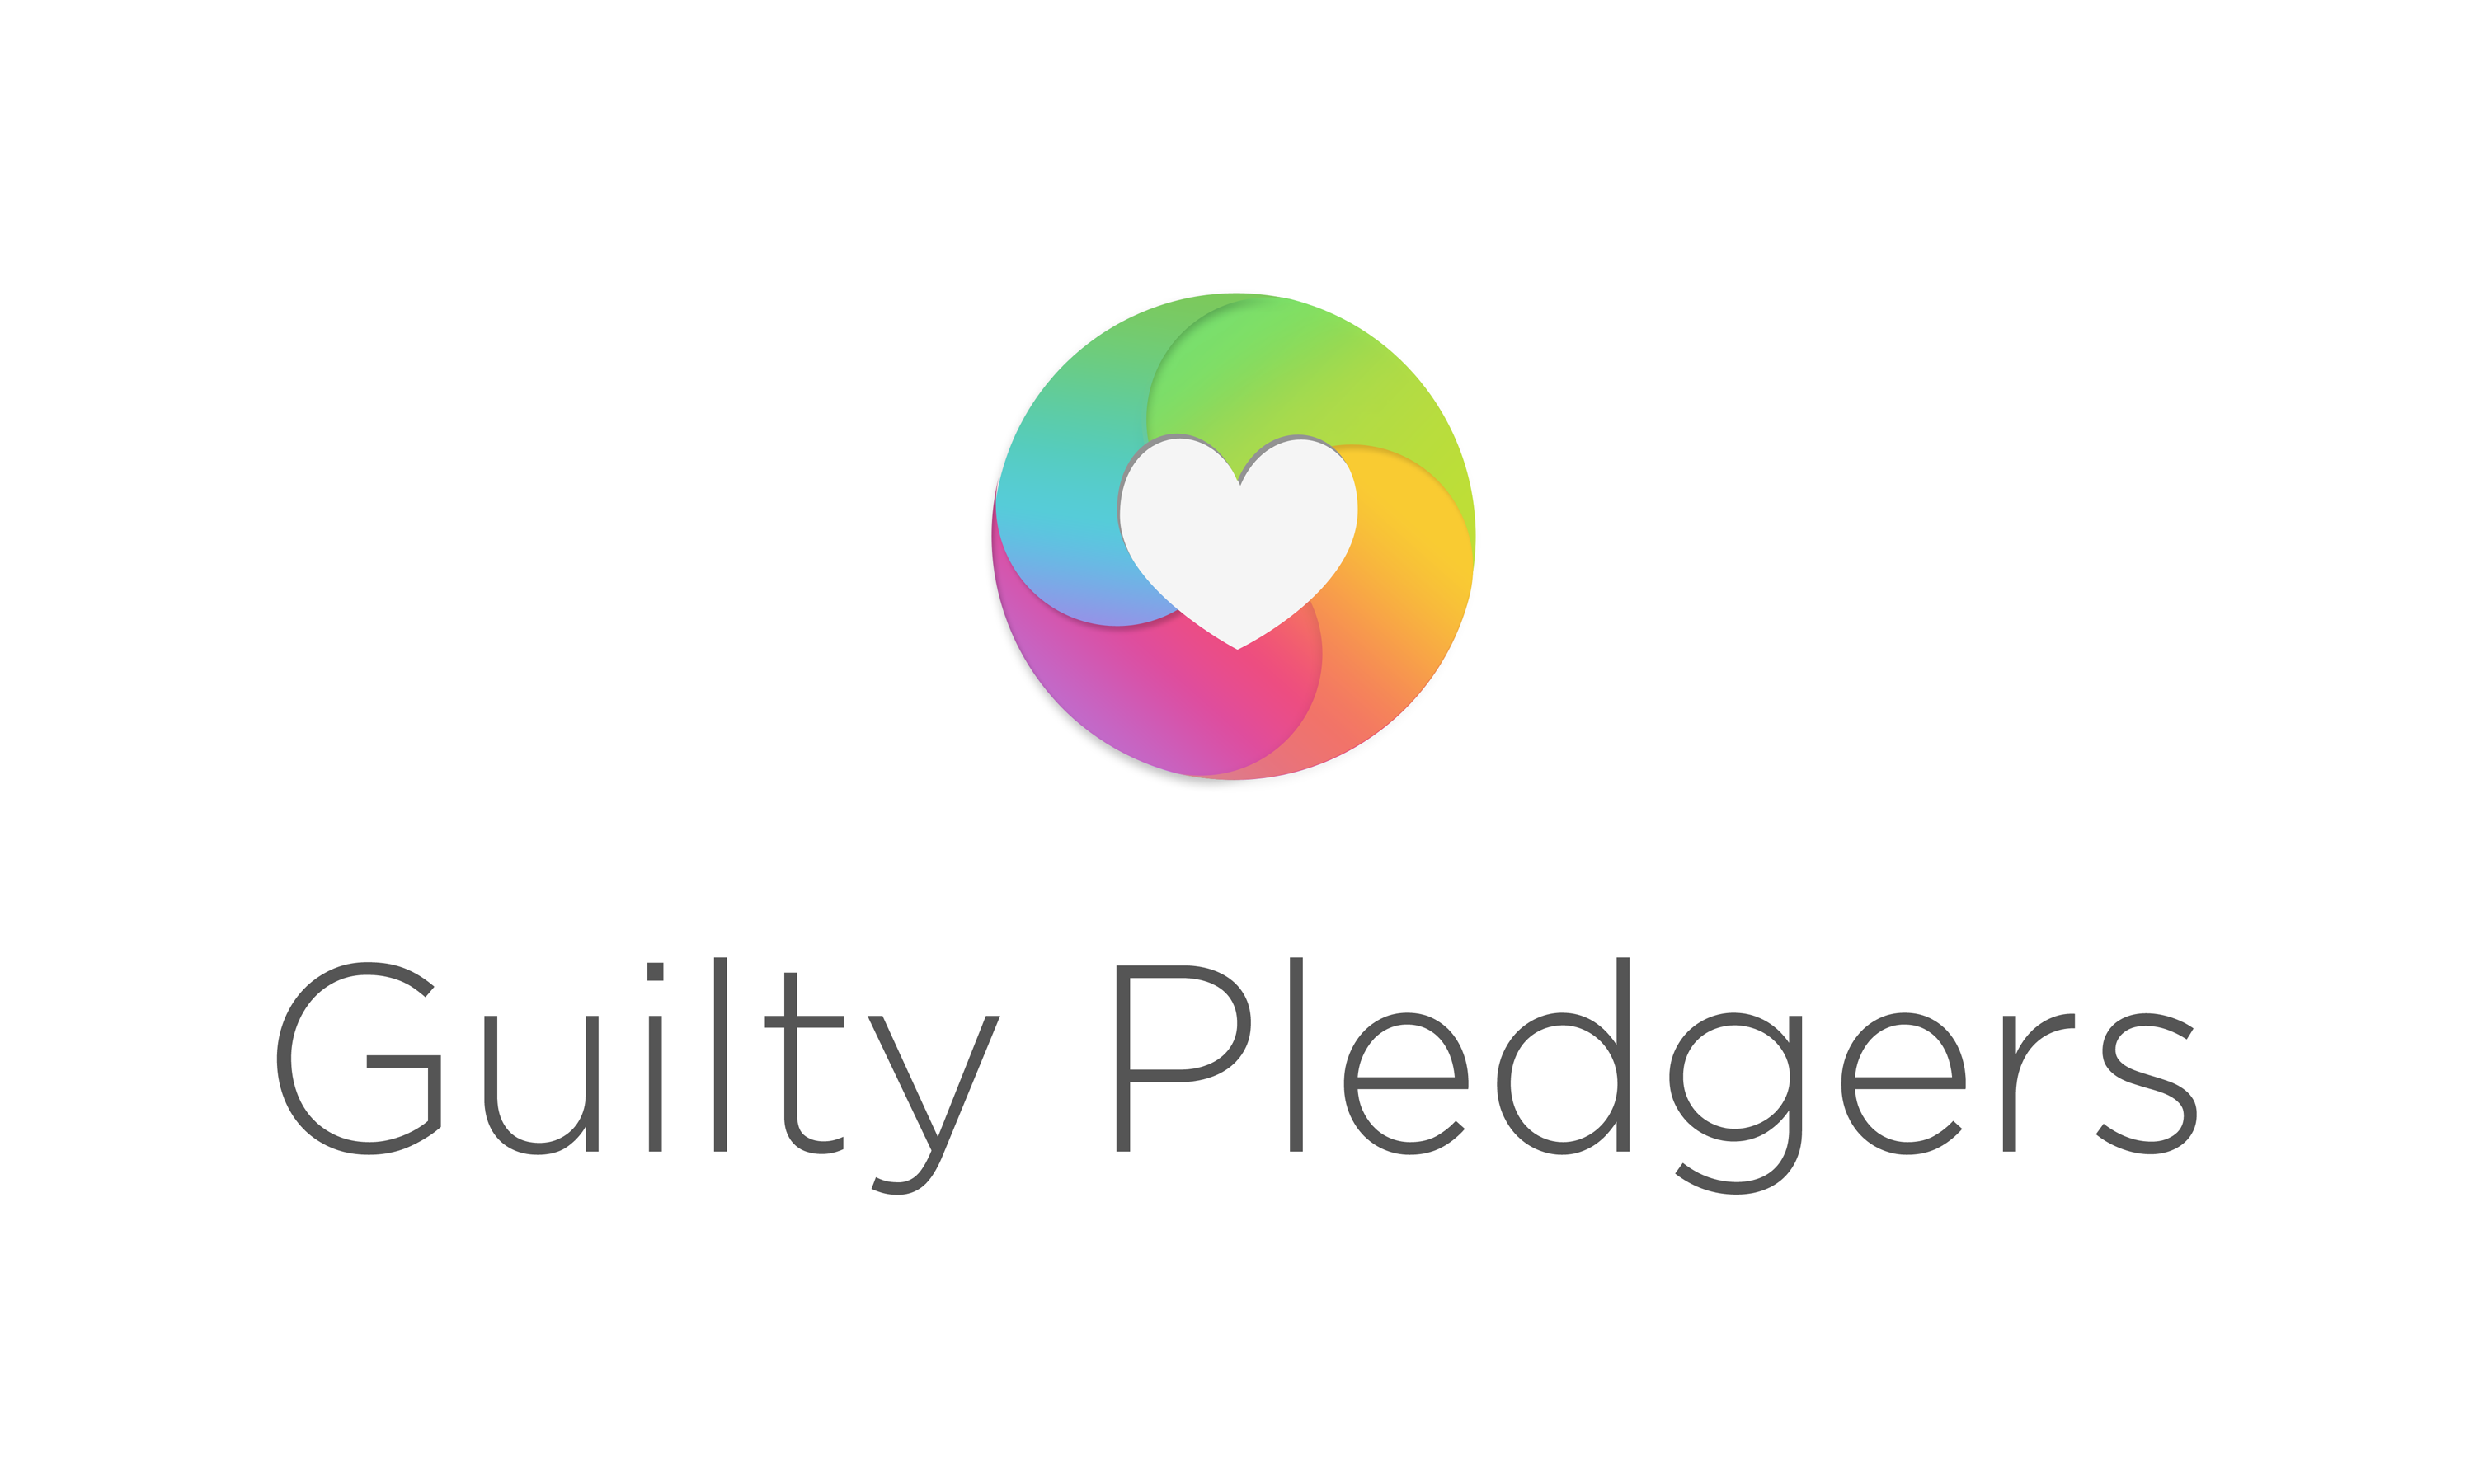 Guilty Pledgers logo